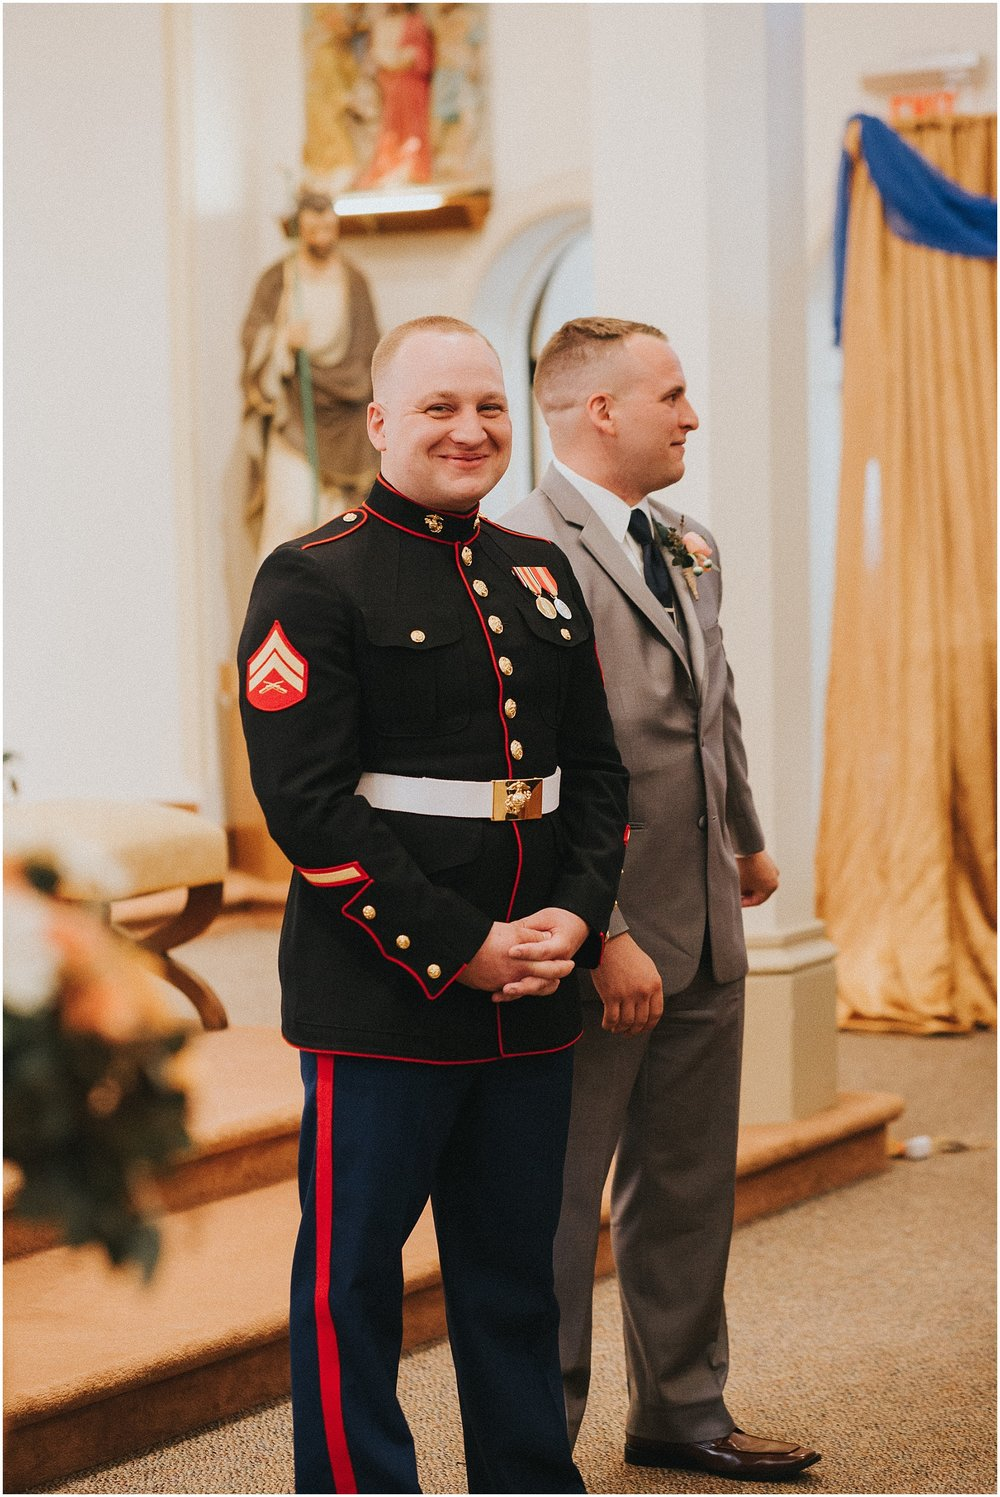 Marine Corp Groom anticipating seeing his Bride during their wedding ceremony